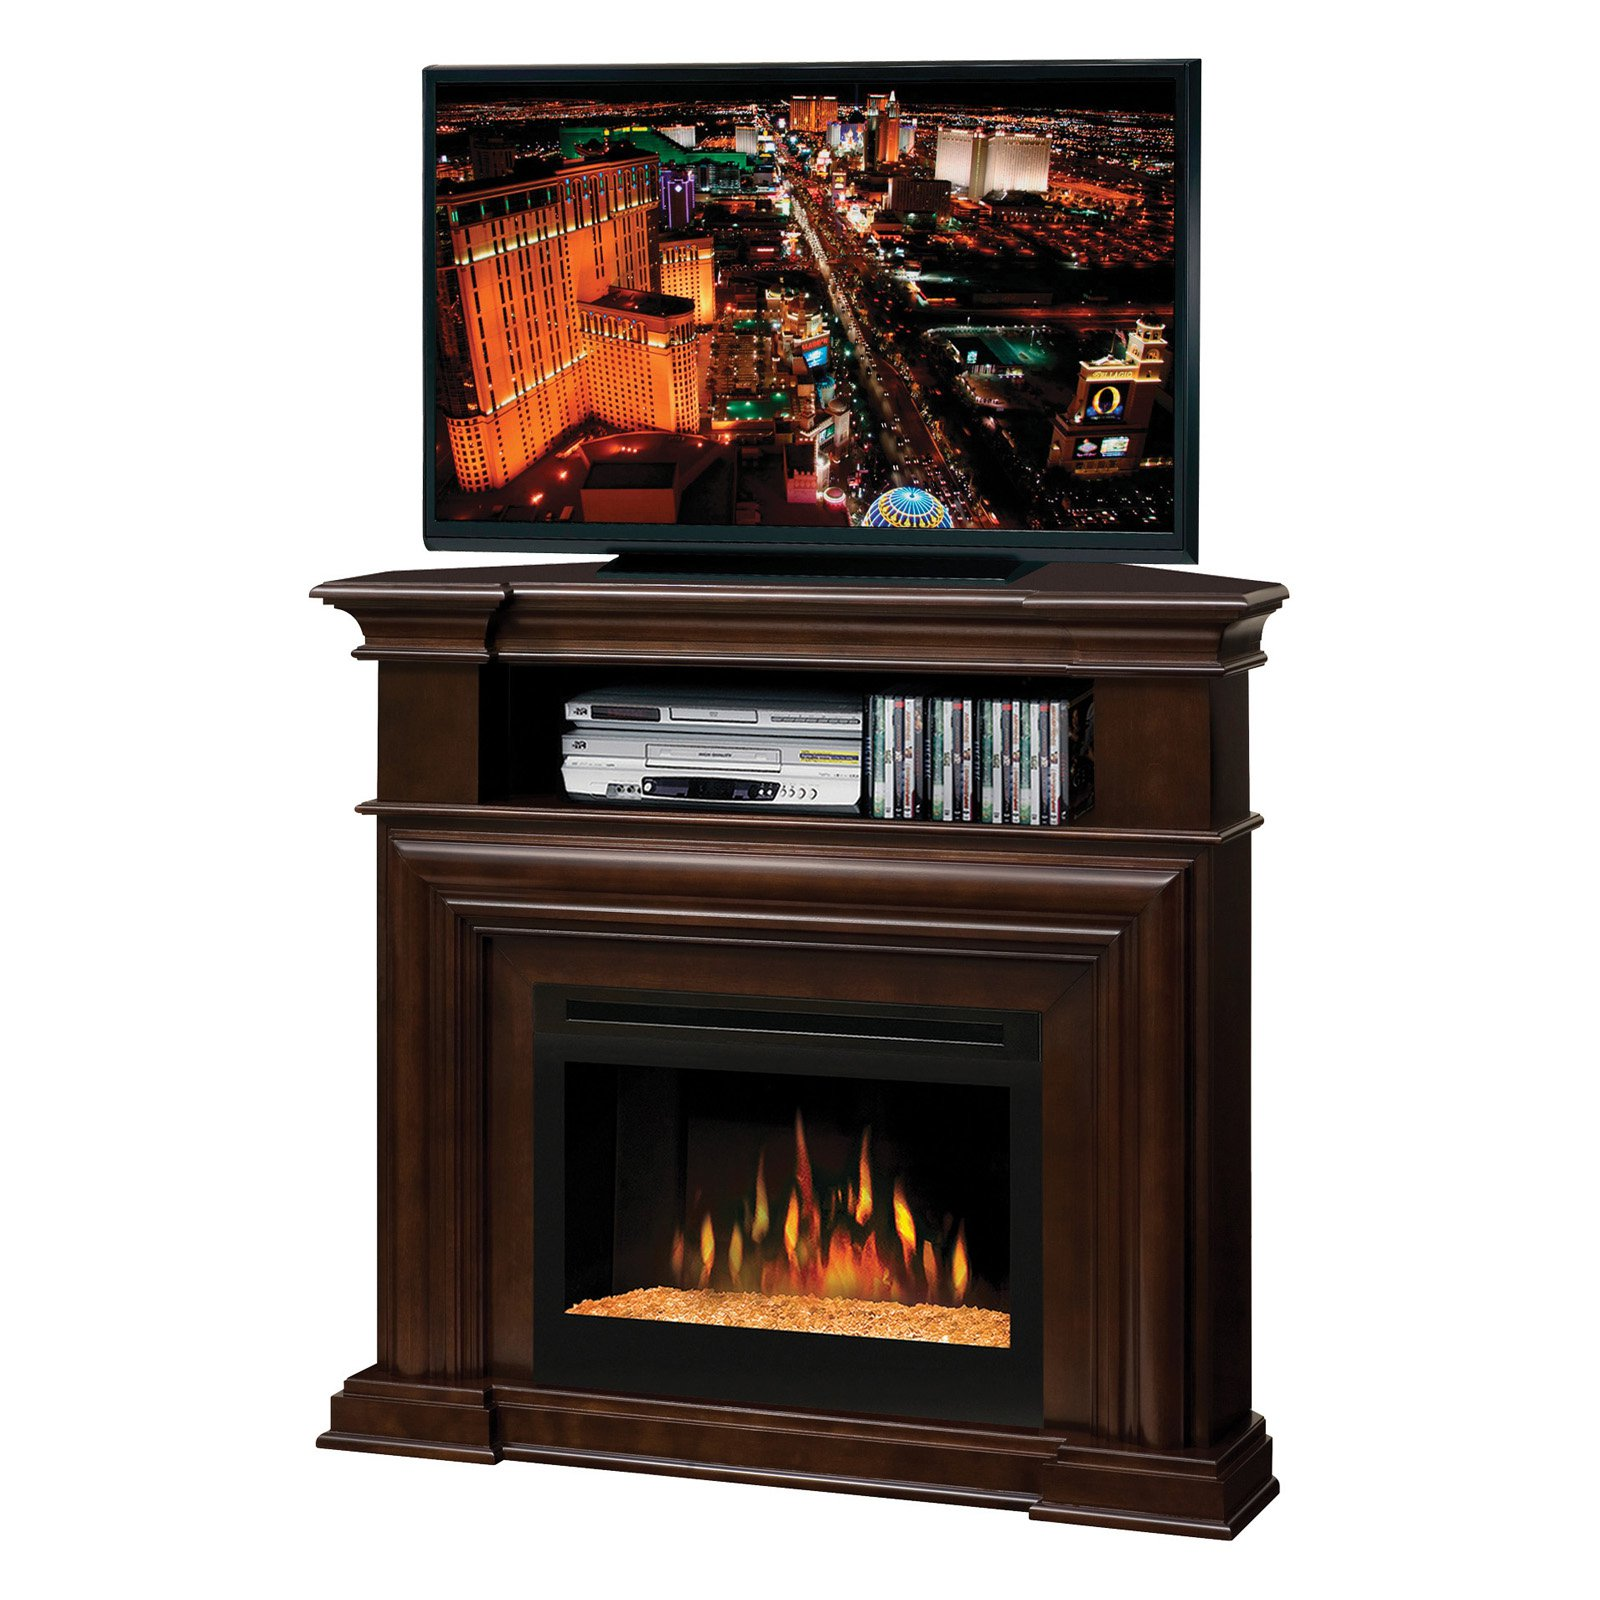 Dimplex Montgomery Corner Entertainment Center Electric Fireplace-Glow Logs